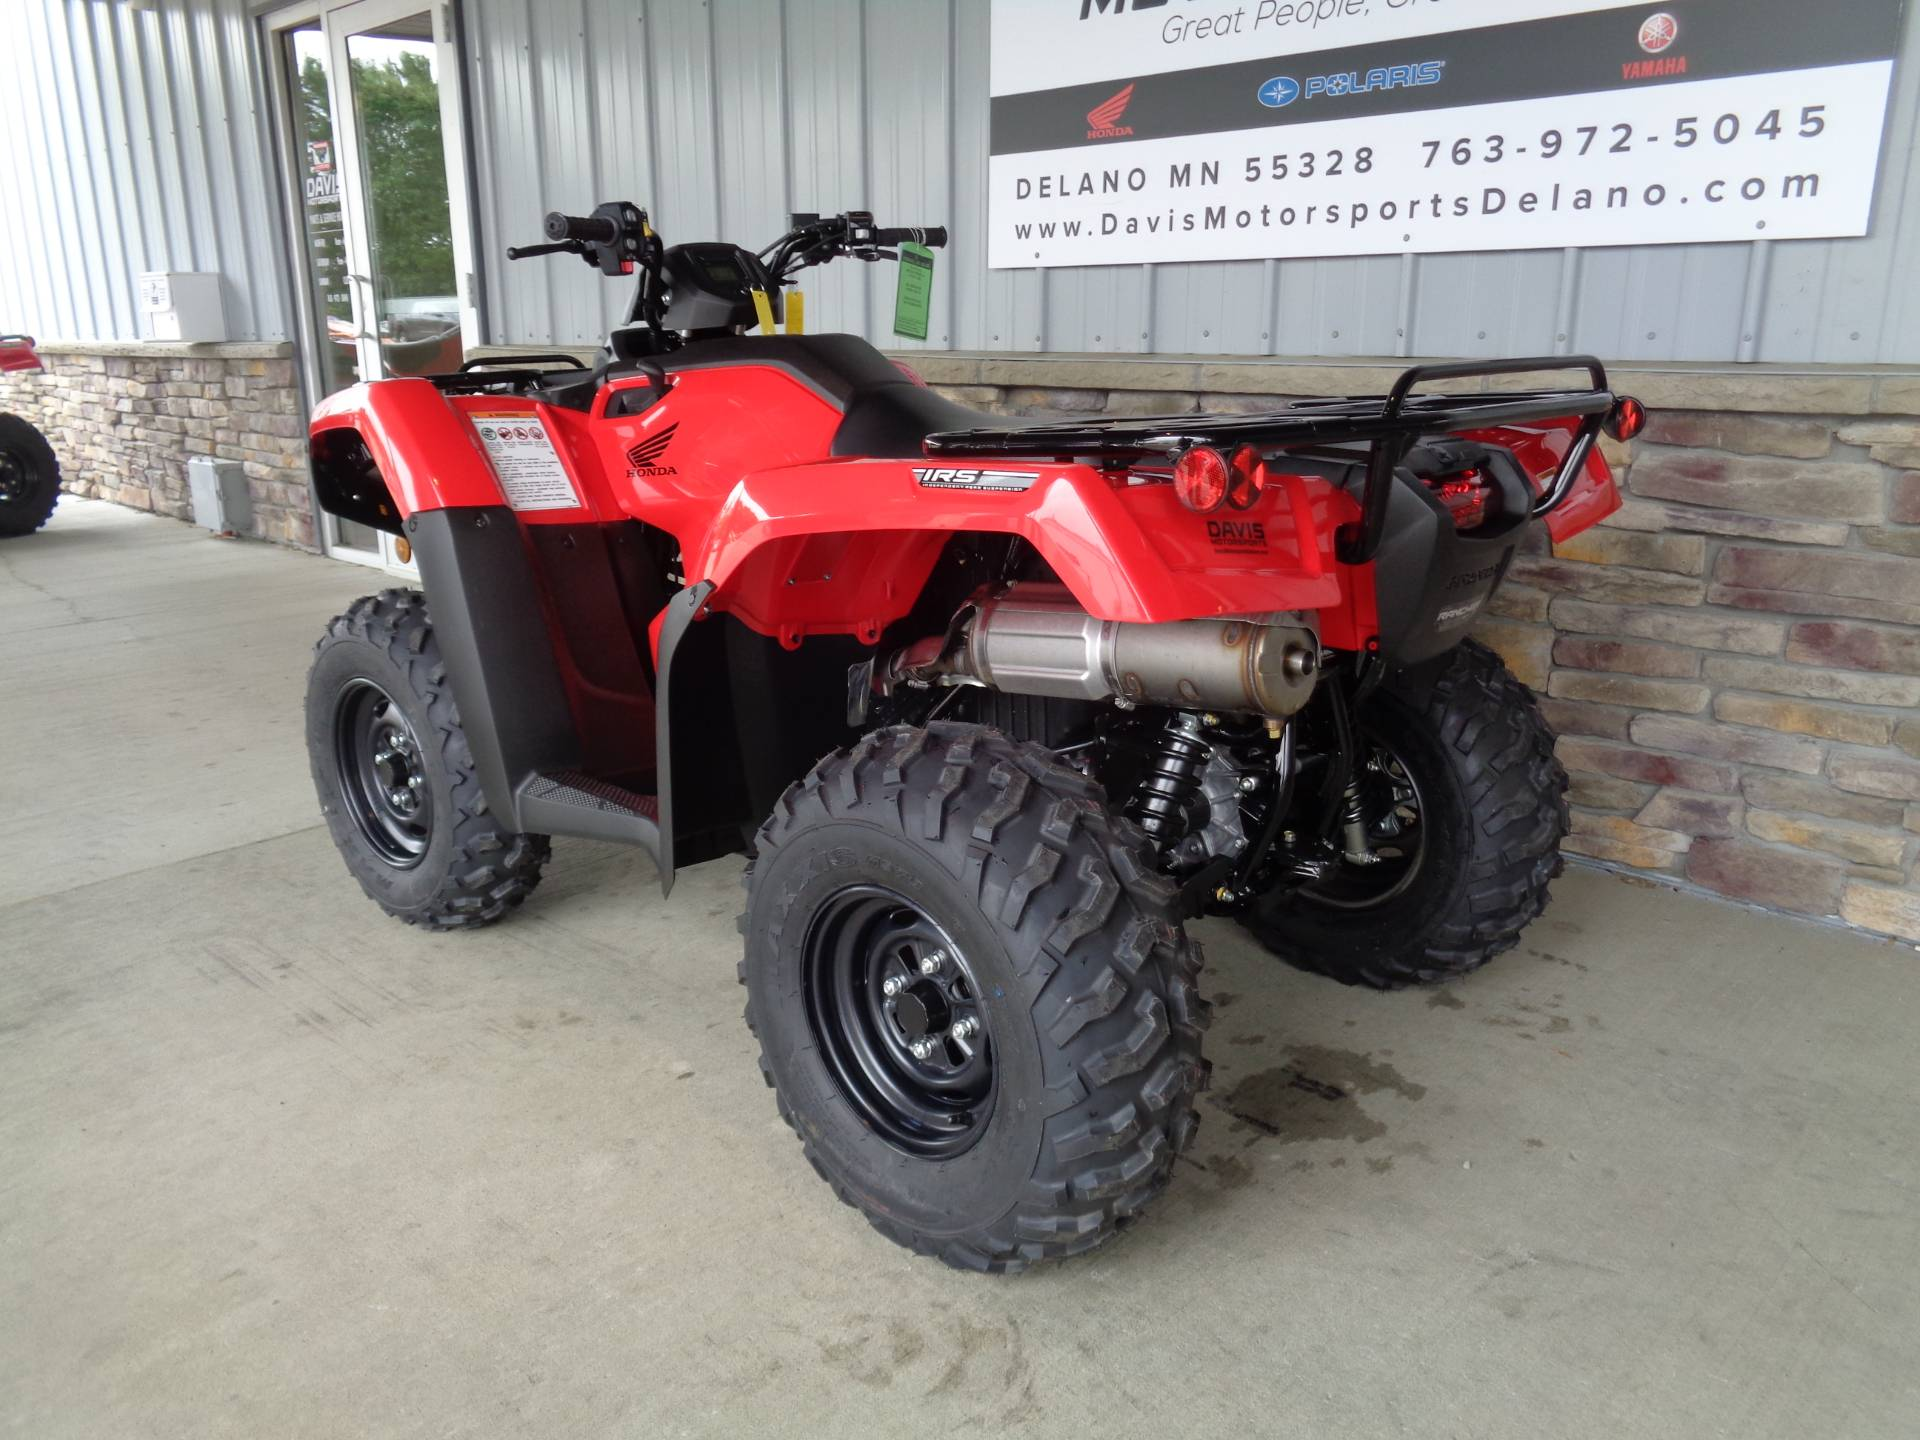 2021 Honda FourTrax Rancher 4x4 Automatic DCT IRS in Delano, Minnesota - Photo 6